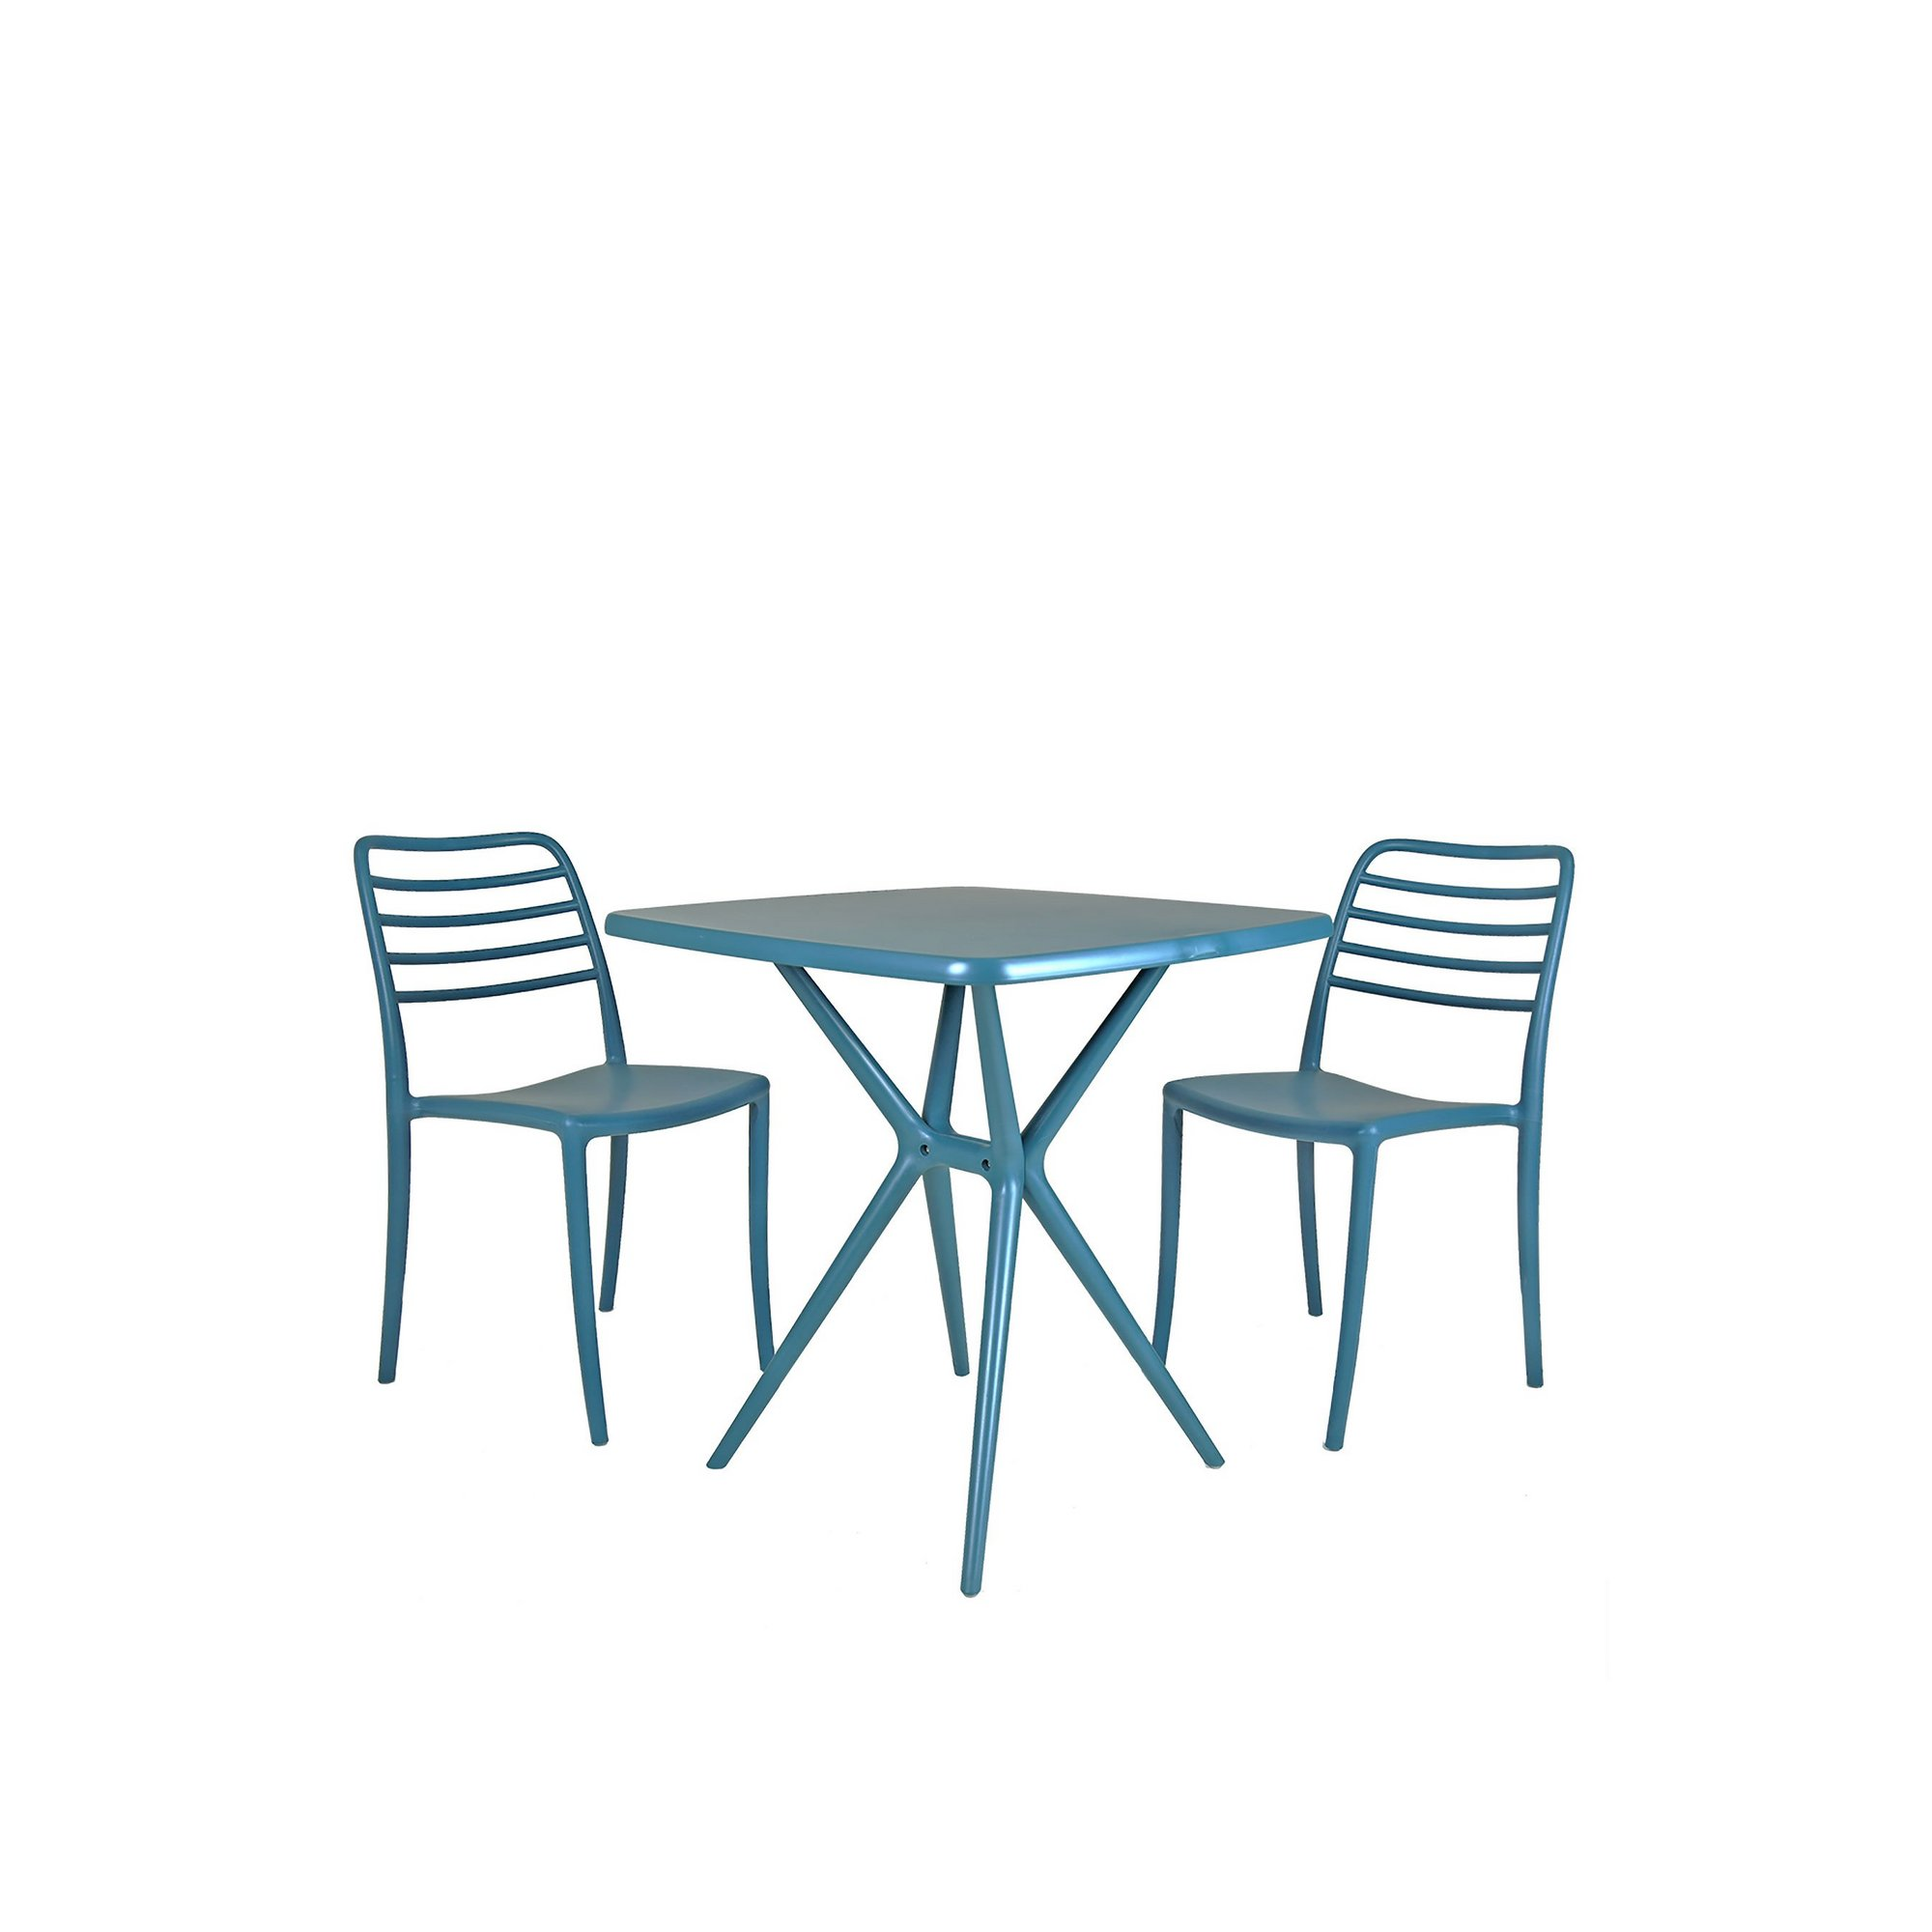 Image of Charles Bentley 2 Seater Plastic Bistro Set Blue